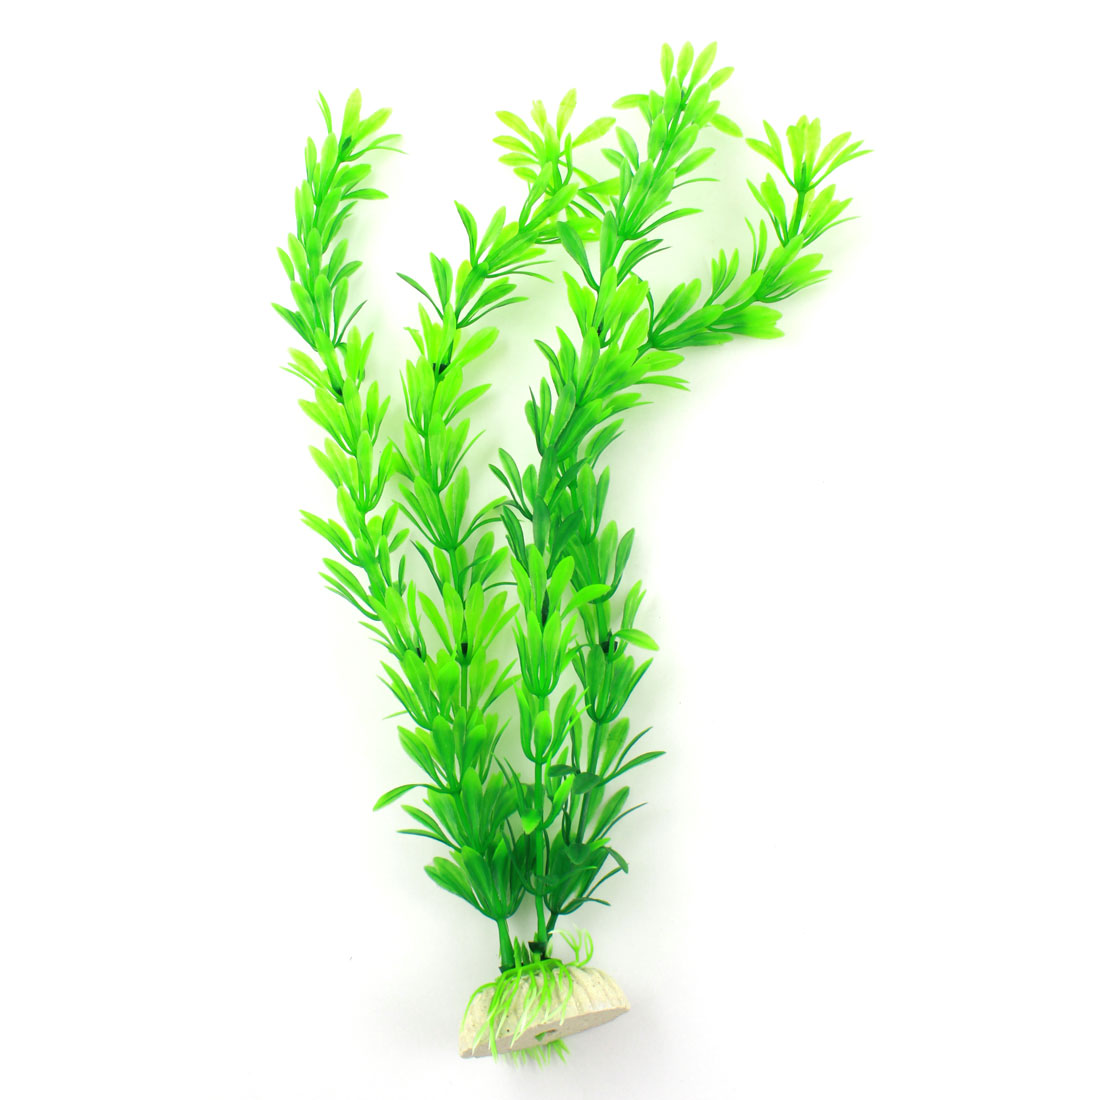 "Fish Tank Aquarium Green Plastic 12"" High Artificial Aquatic Plants Decor"